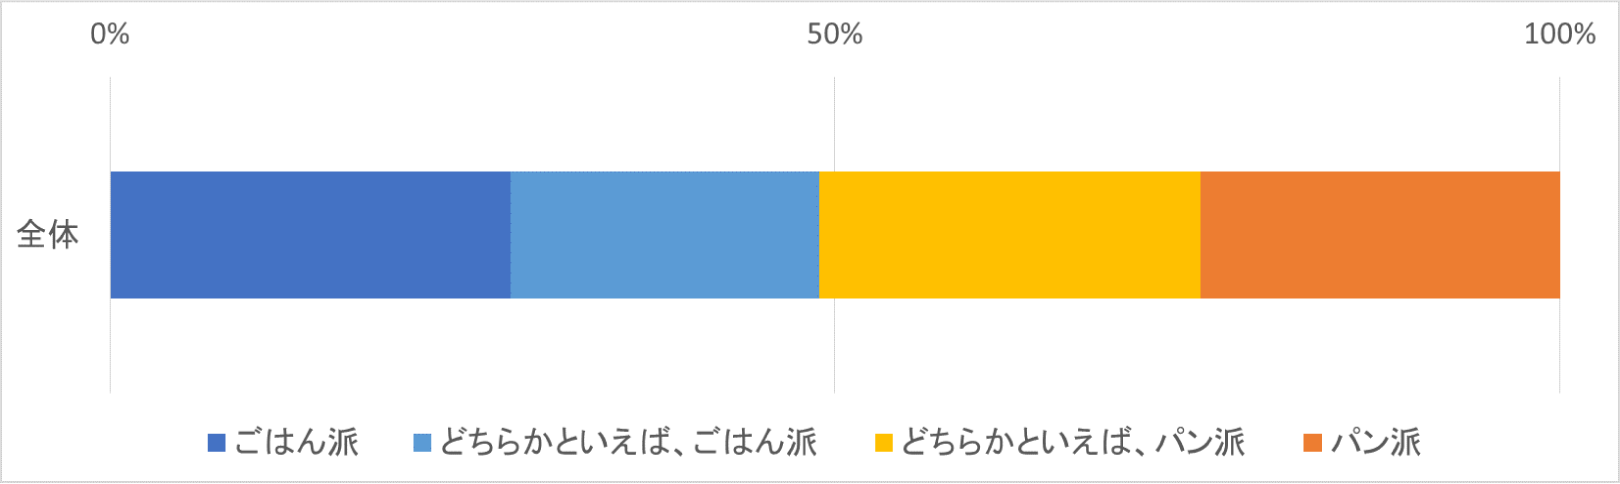 201809-03-fig-03.png